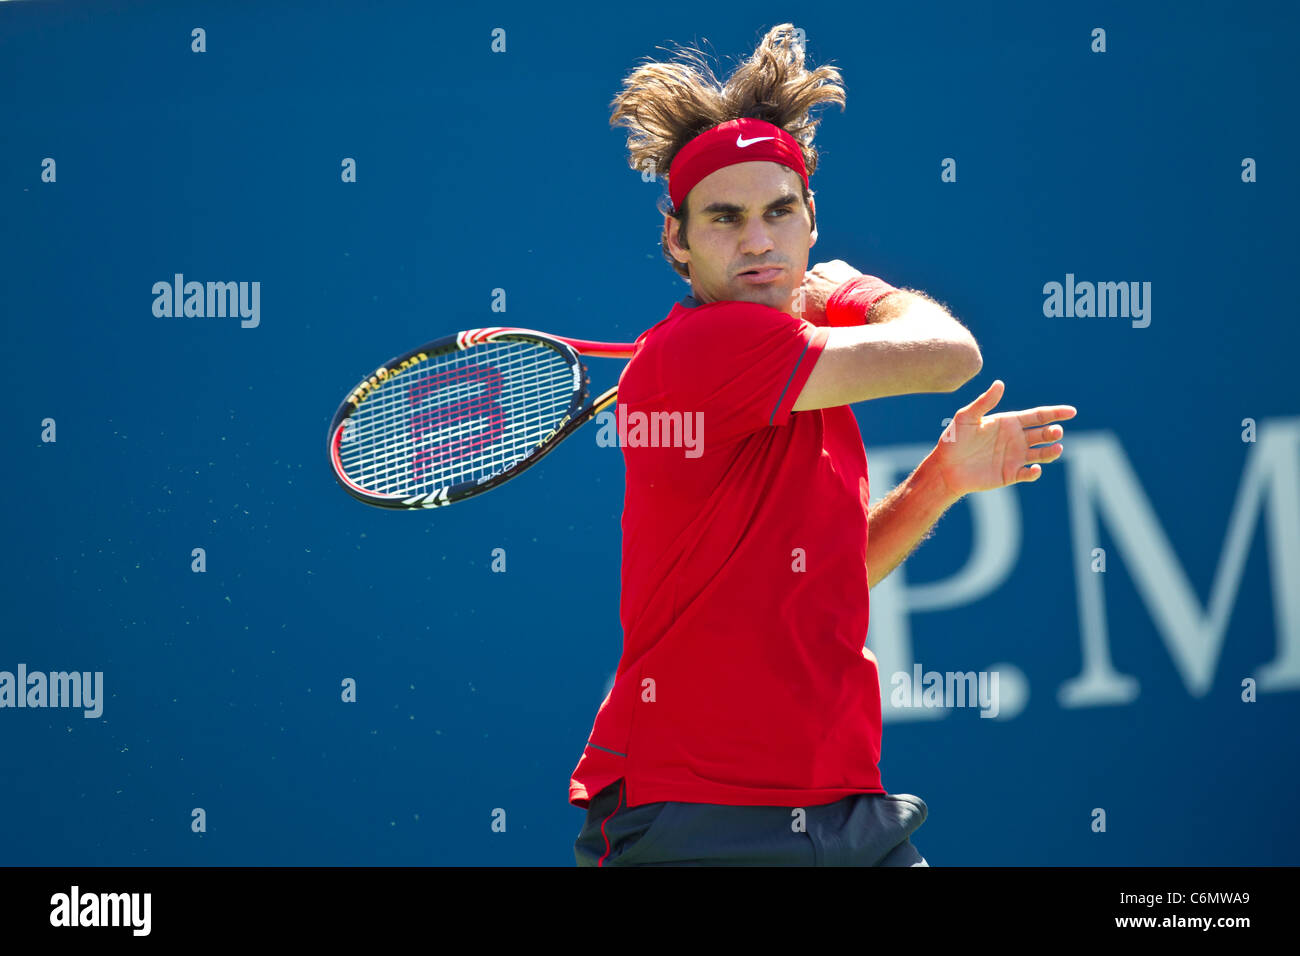 Roger Federer (SUI) competing at the 2011 US Open Tennis. - Stock Image